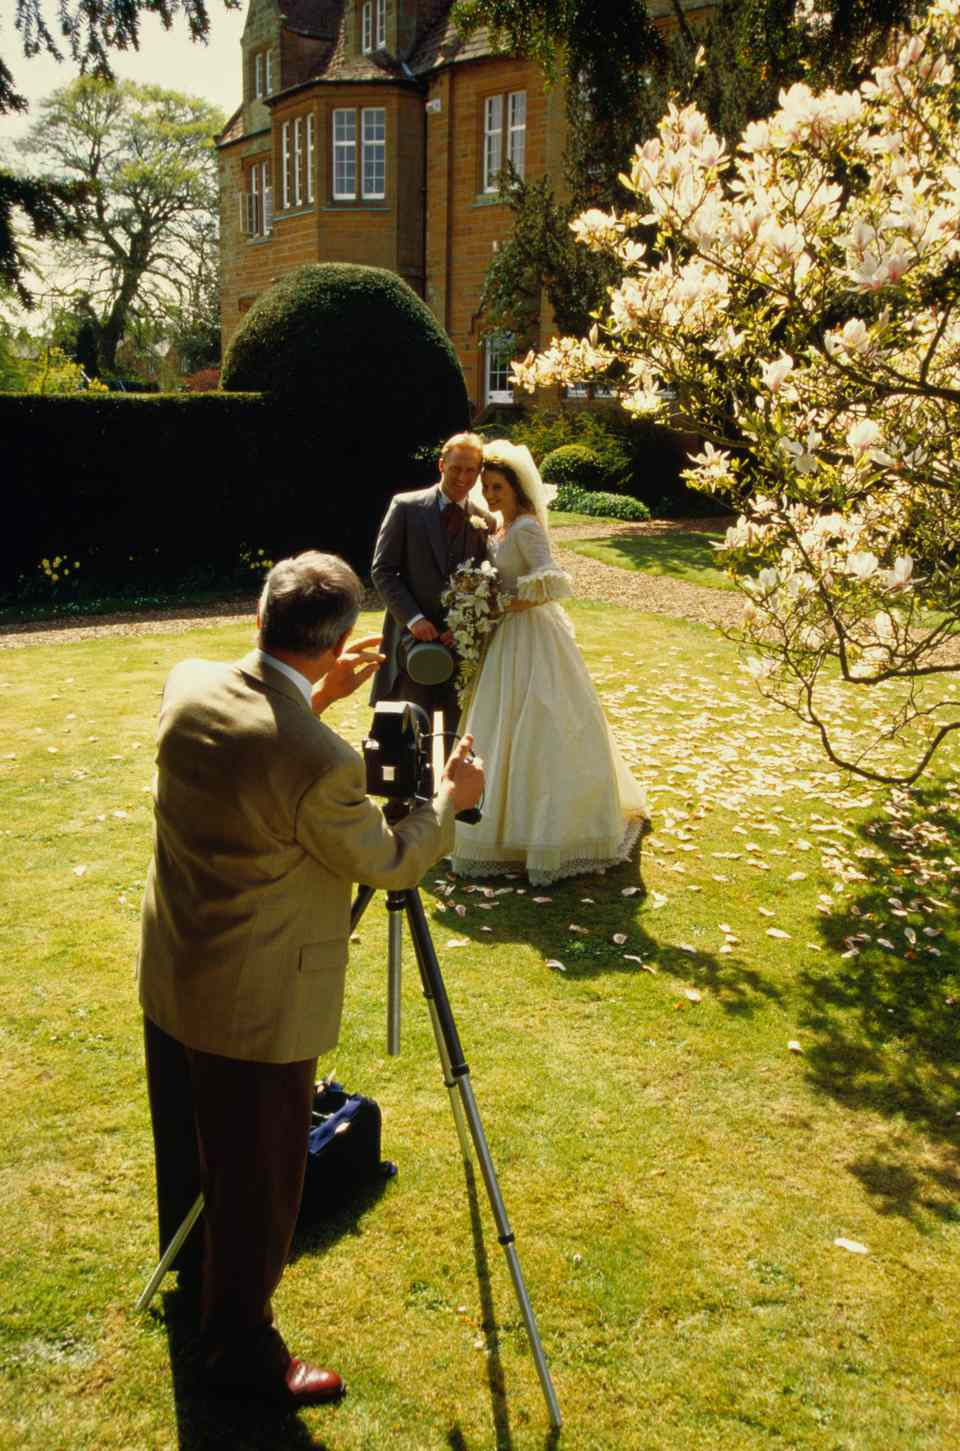 wedding photographer and newlywed couple